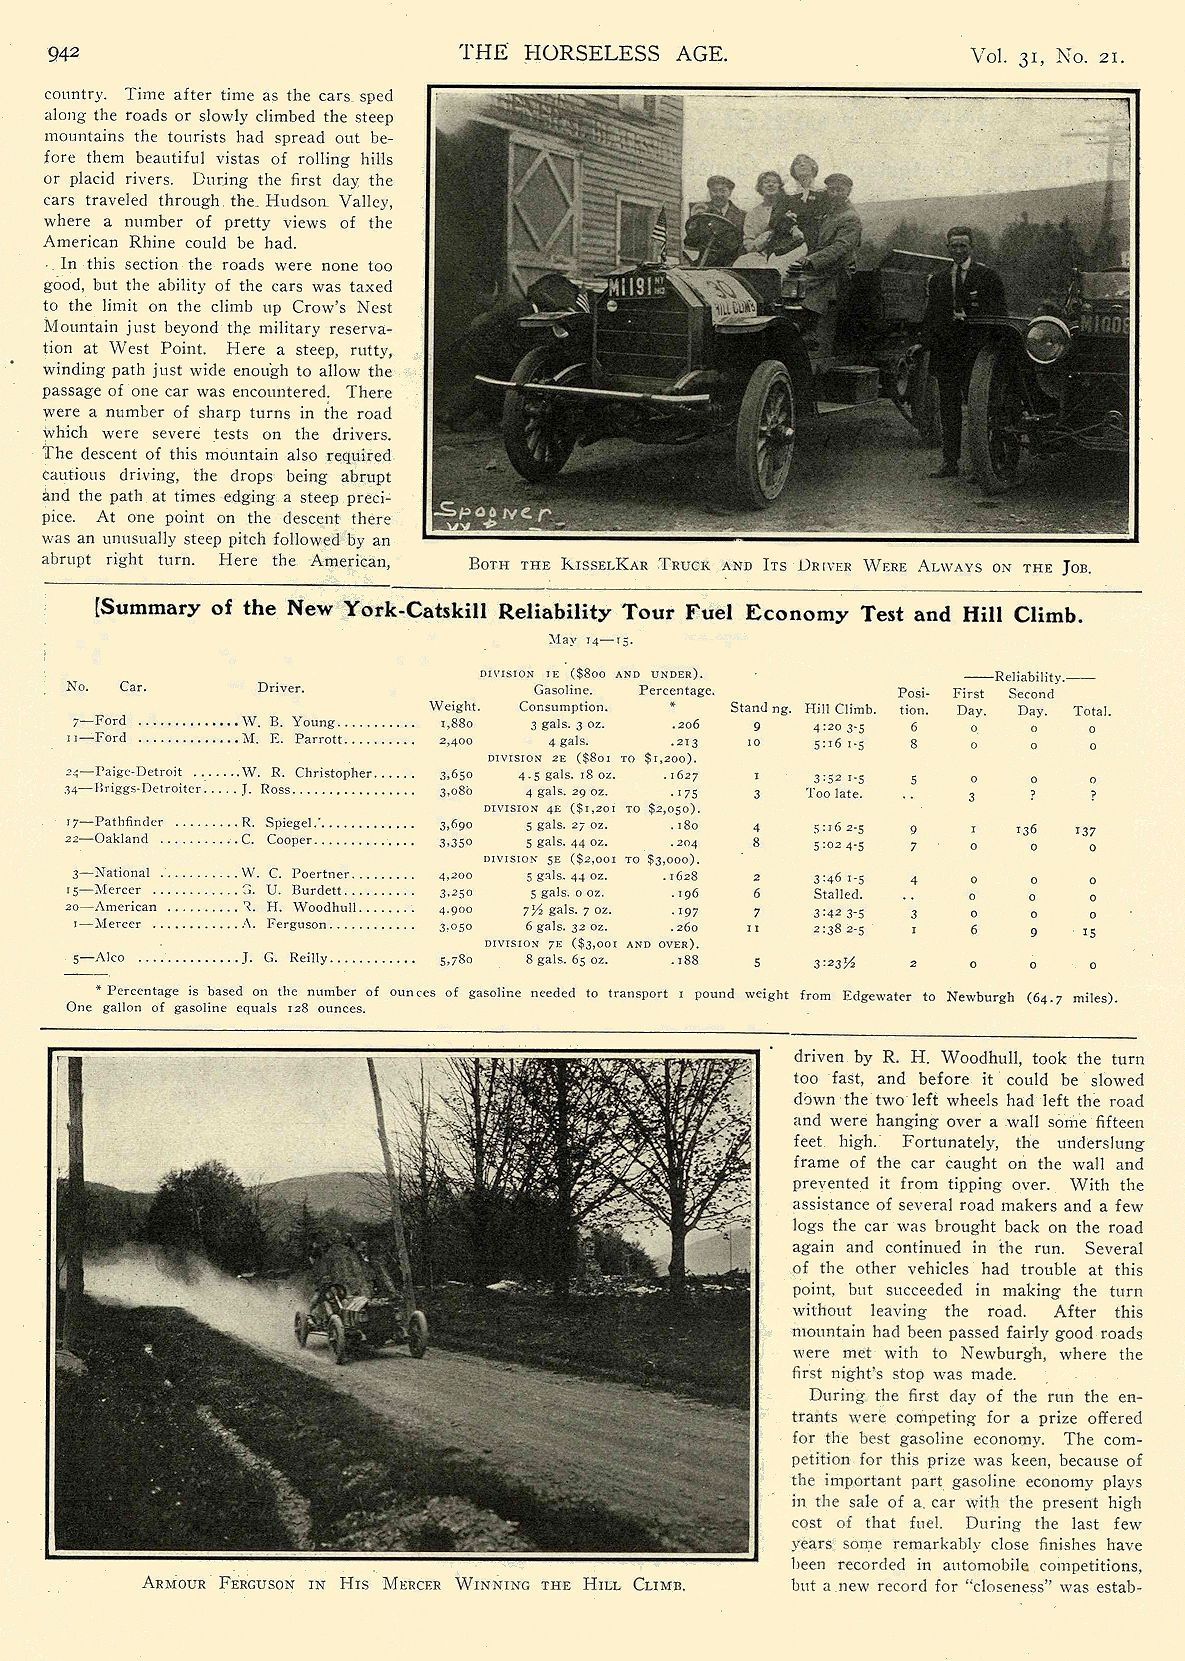 """1913 5 21 NATIONAL Article National """"SIX"""" $2375 New Yorkers Tour to the Catskills National Motor Vehicle Co. Indianapolis, IND THE HORSELESS AGE May 21, 1913 8.5″x12″ page 942"""